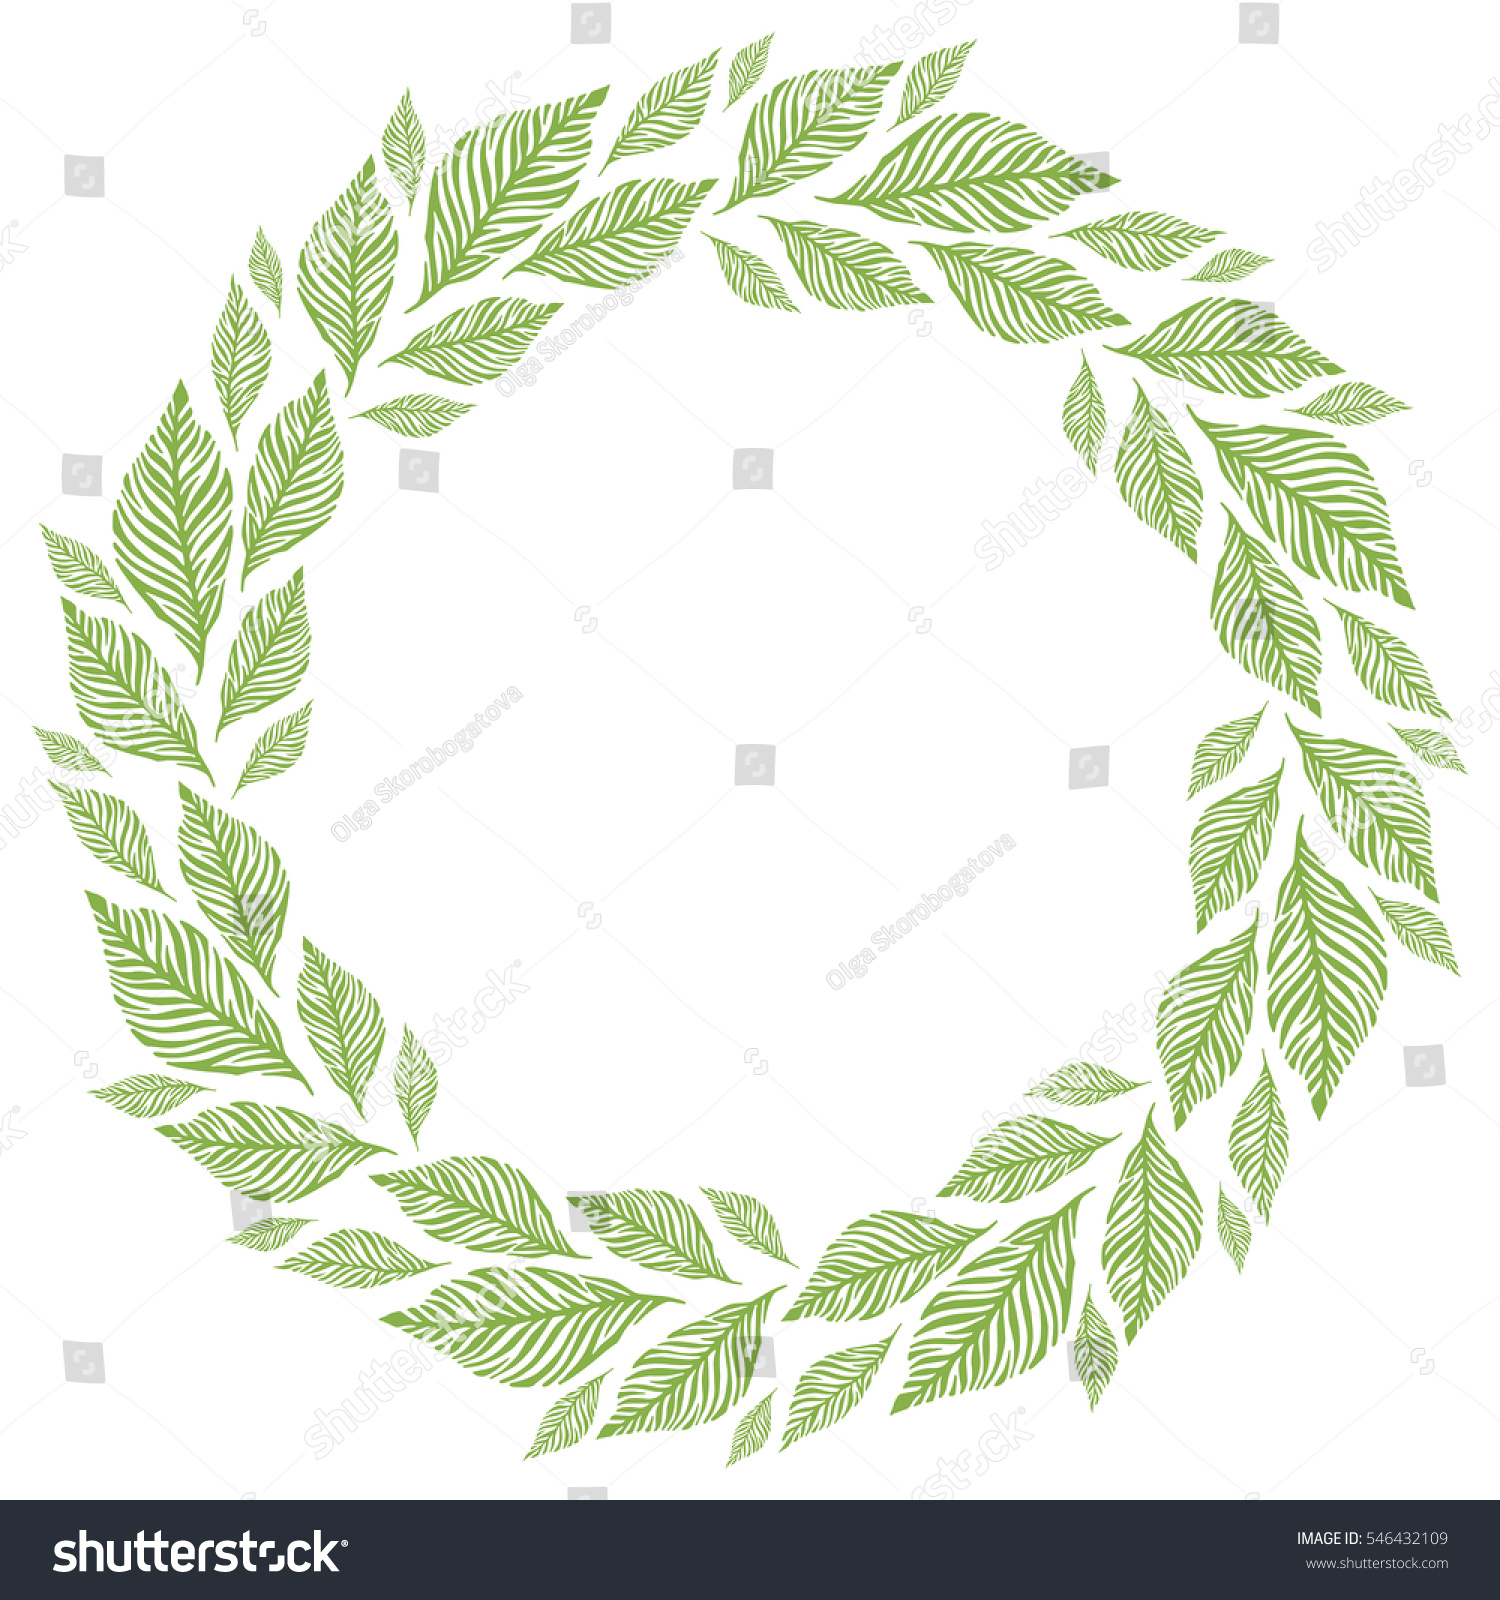 Round frame with decorative branch vector illustration stock - Vector Circle Frame Wreath Made Of Leaves Circle Decoration